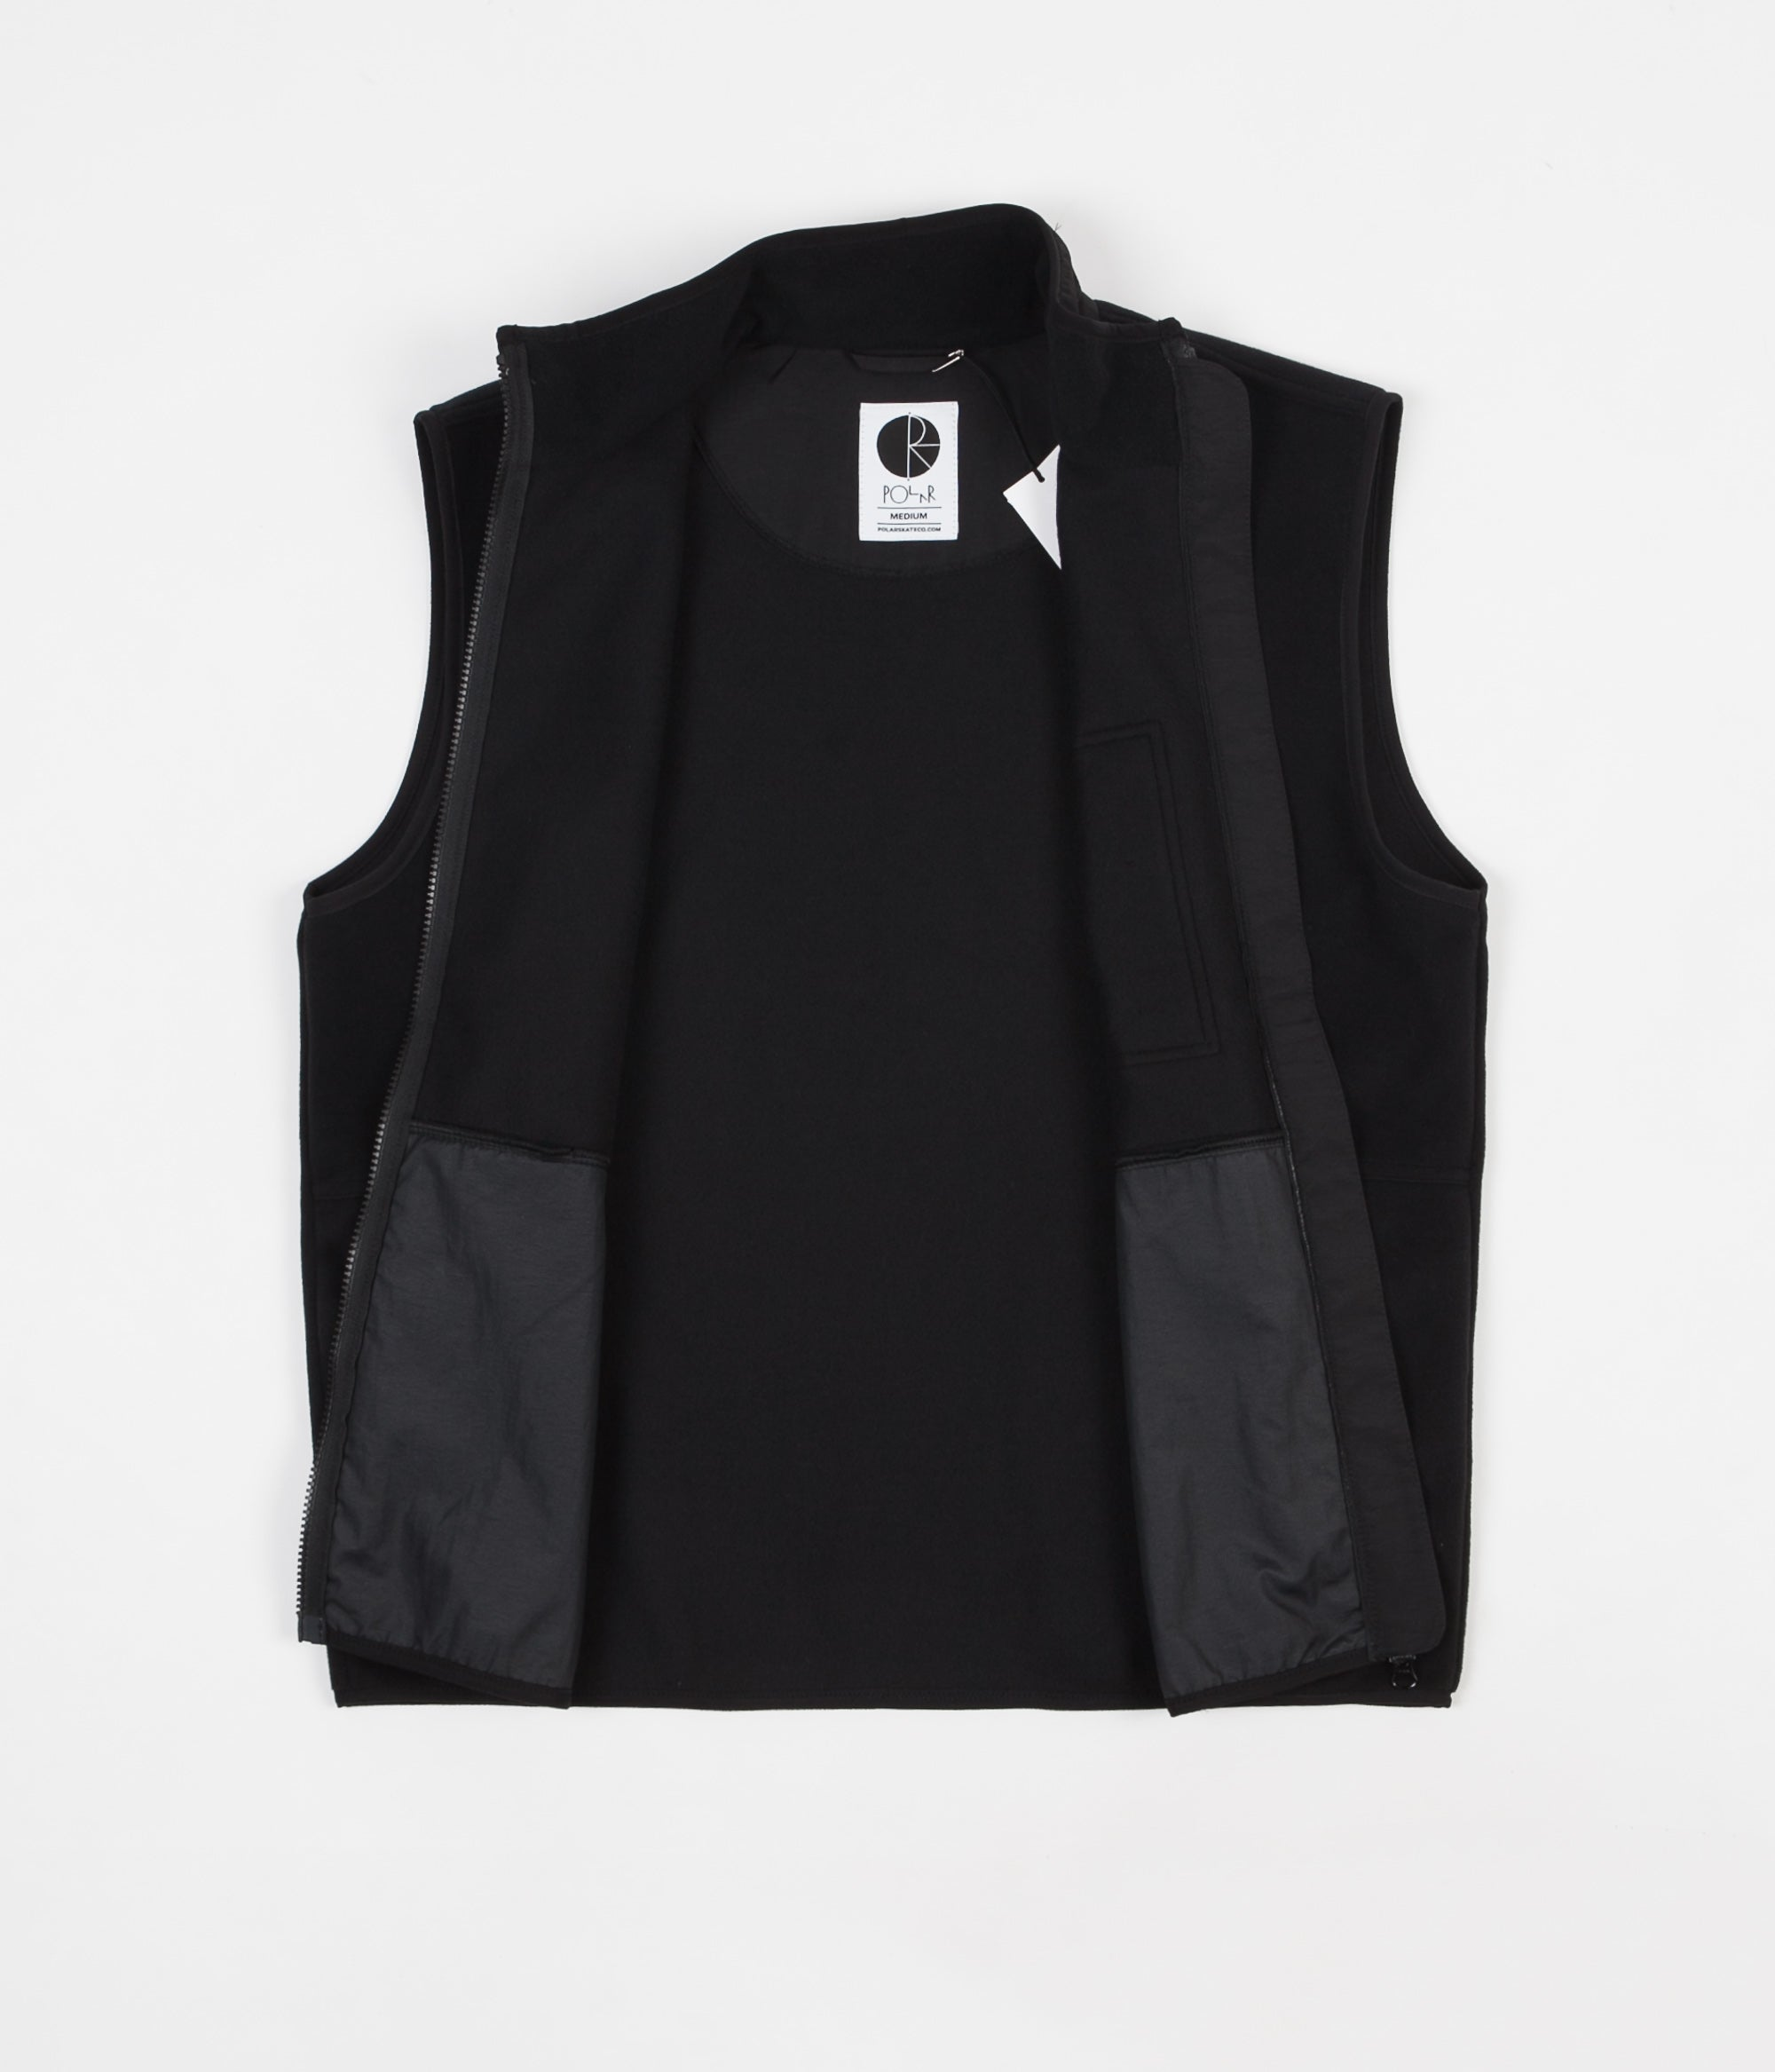 Polar Stenstrom Fleece Vest - Black / Black